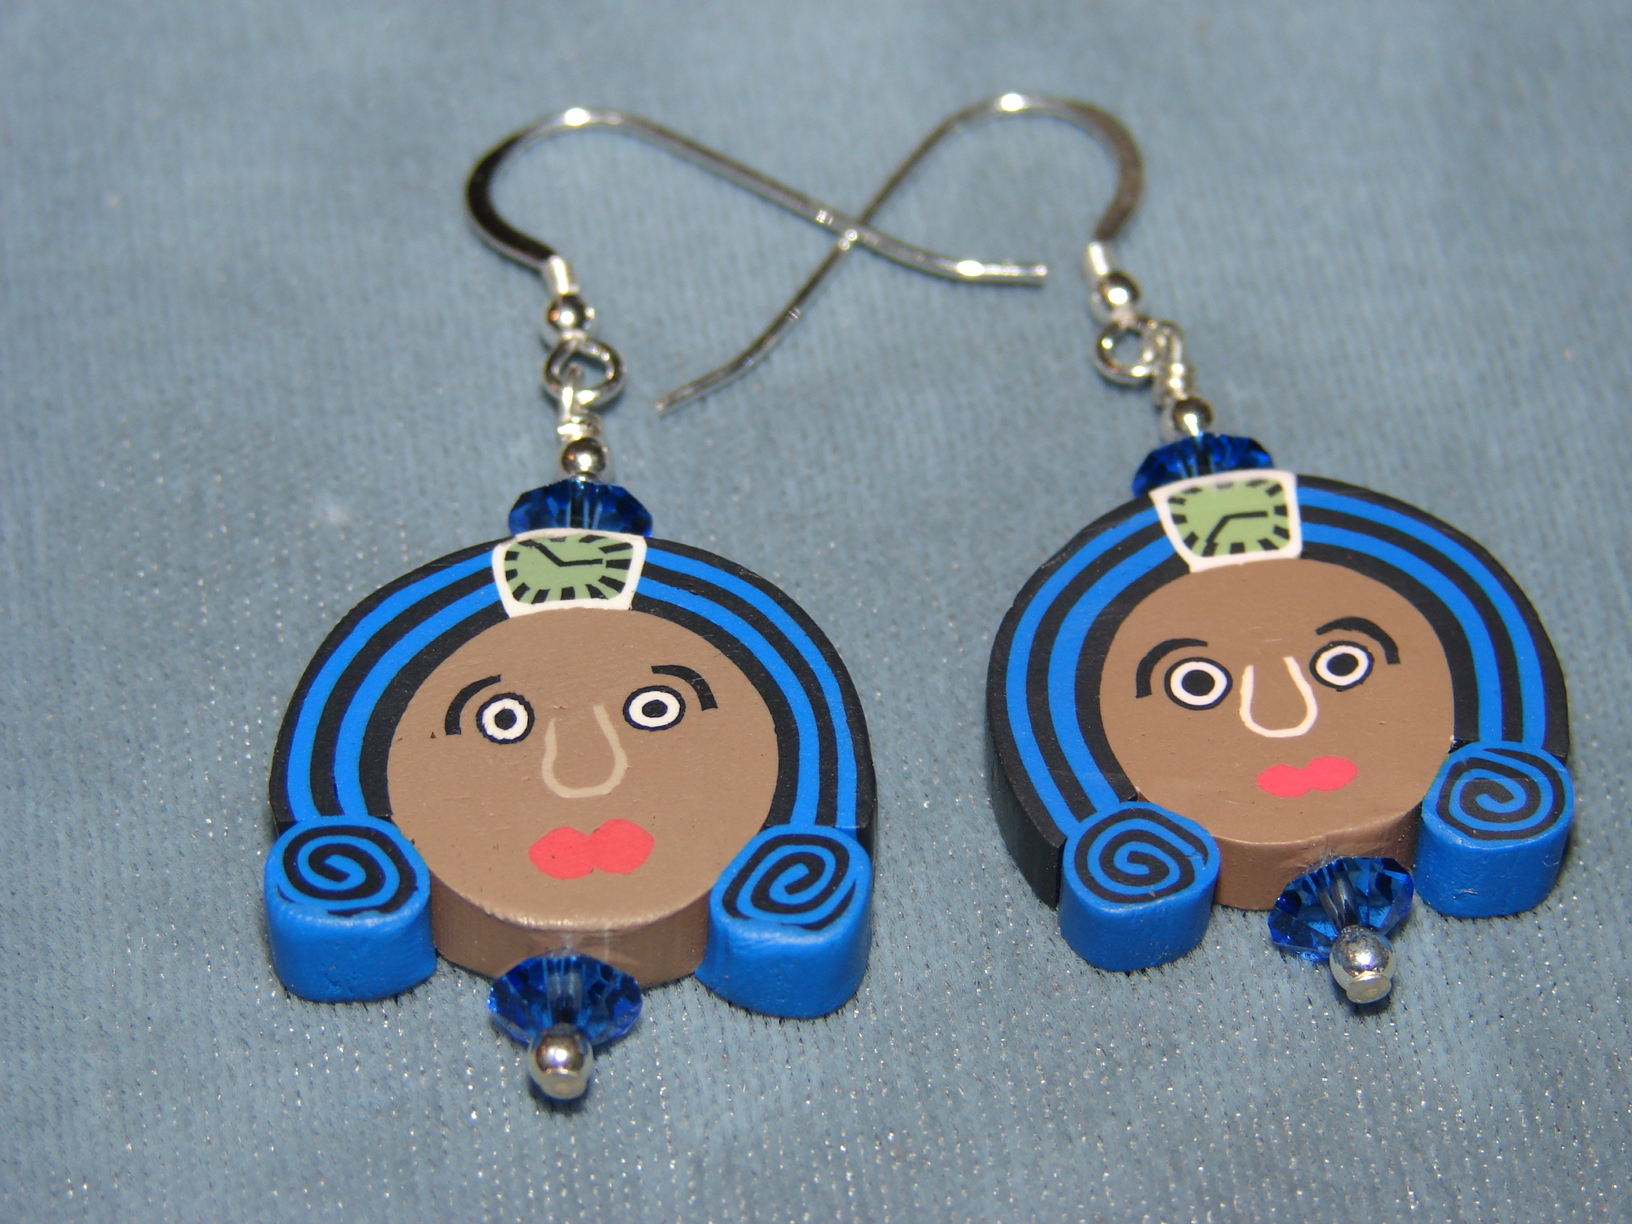 royal apache artistry raa blue fimo face earrings online store powered by storenvy. Black Bedroom Furniture Sets. Home Design Ideas